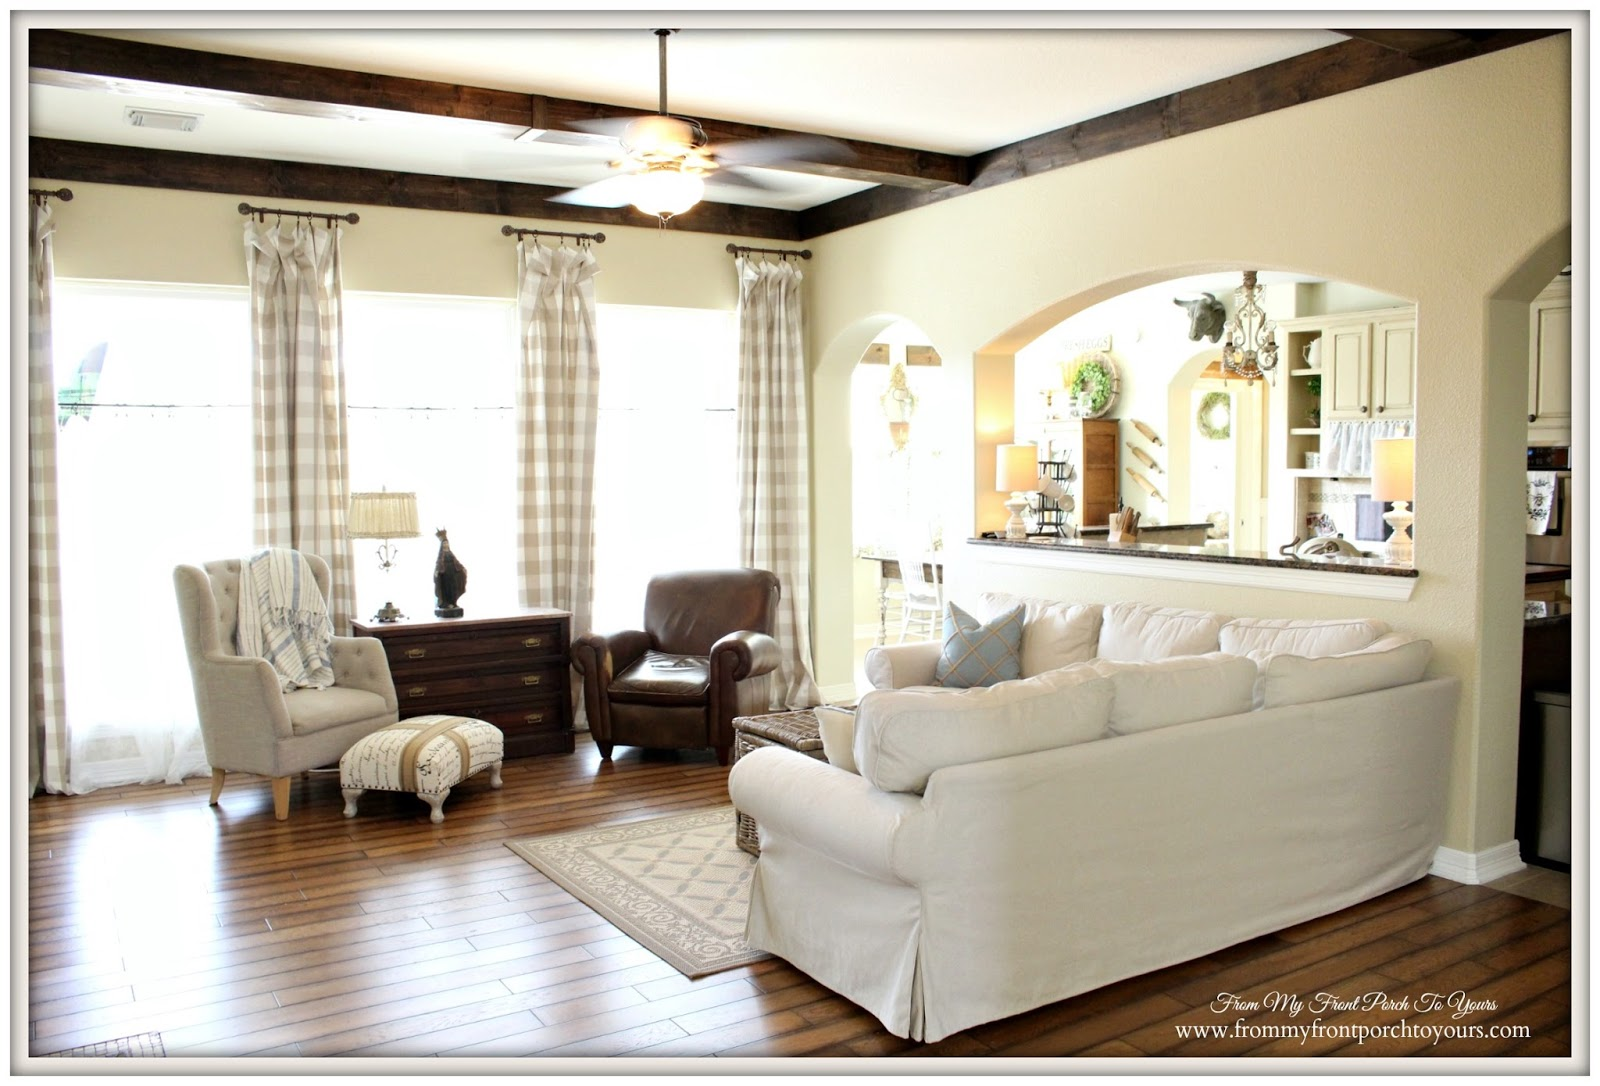 From My Front Porch To Yours: Farmhouse Living Room With ... on Curtains For Farmhouse Living Room  id=14266